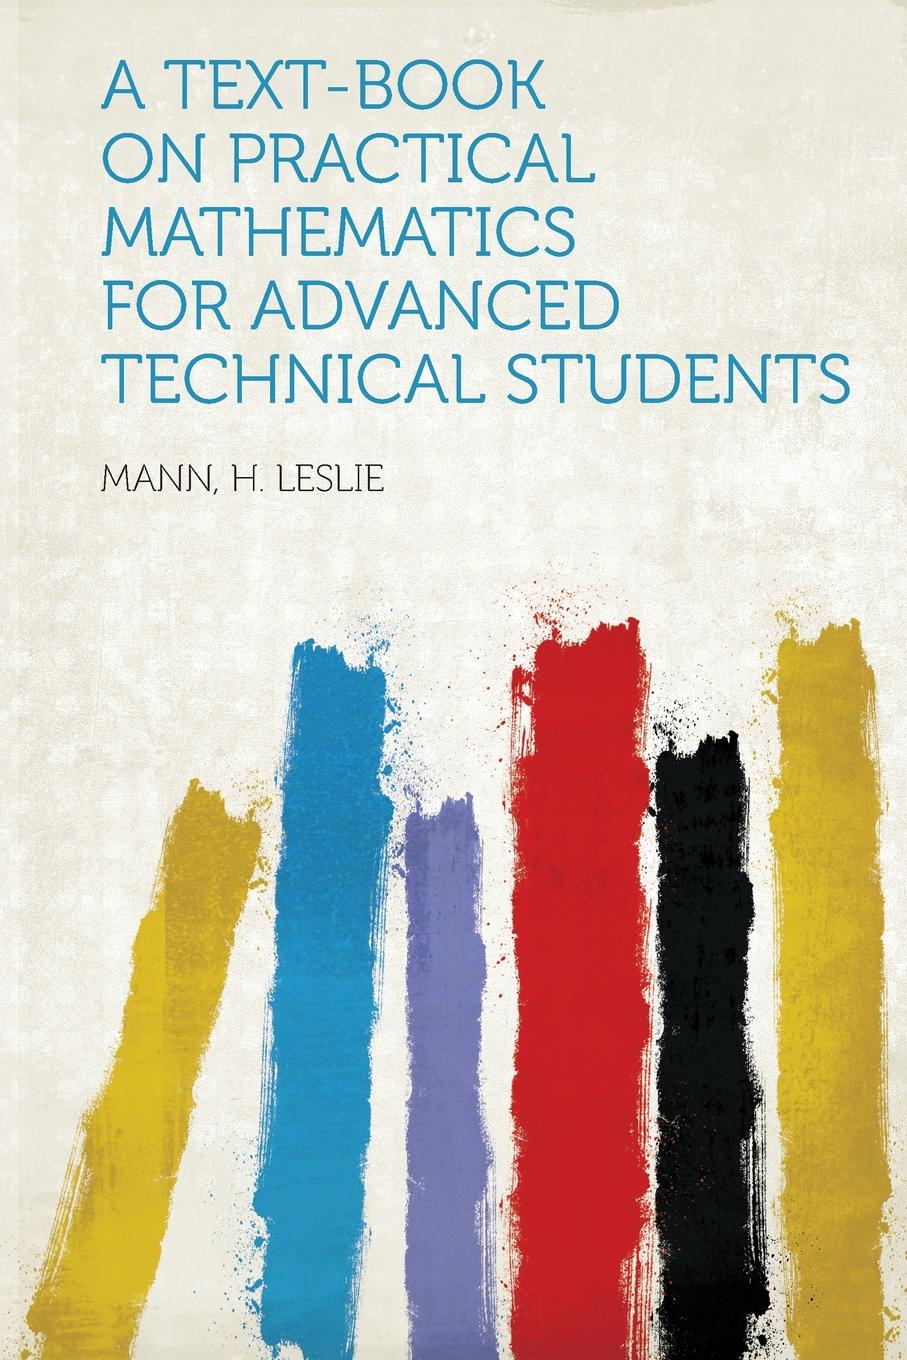 A Text-Book on Practical Mathematics for Advanced Technical Students